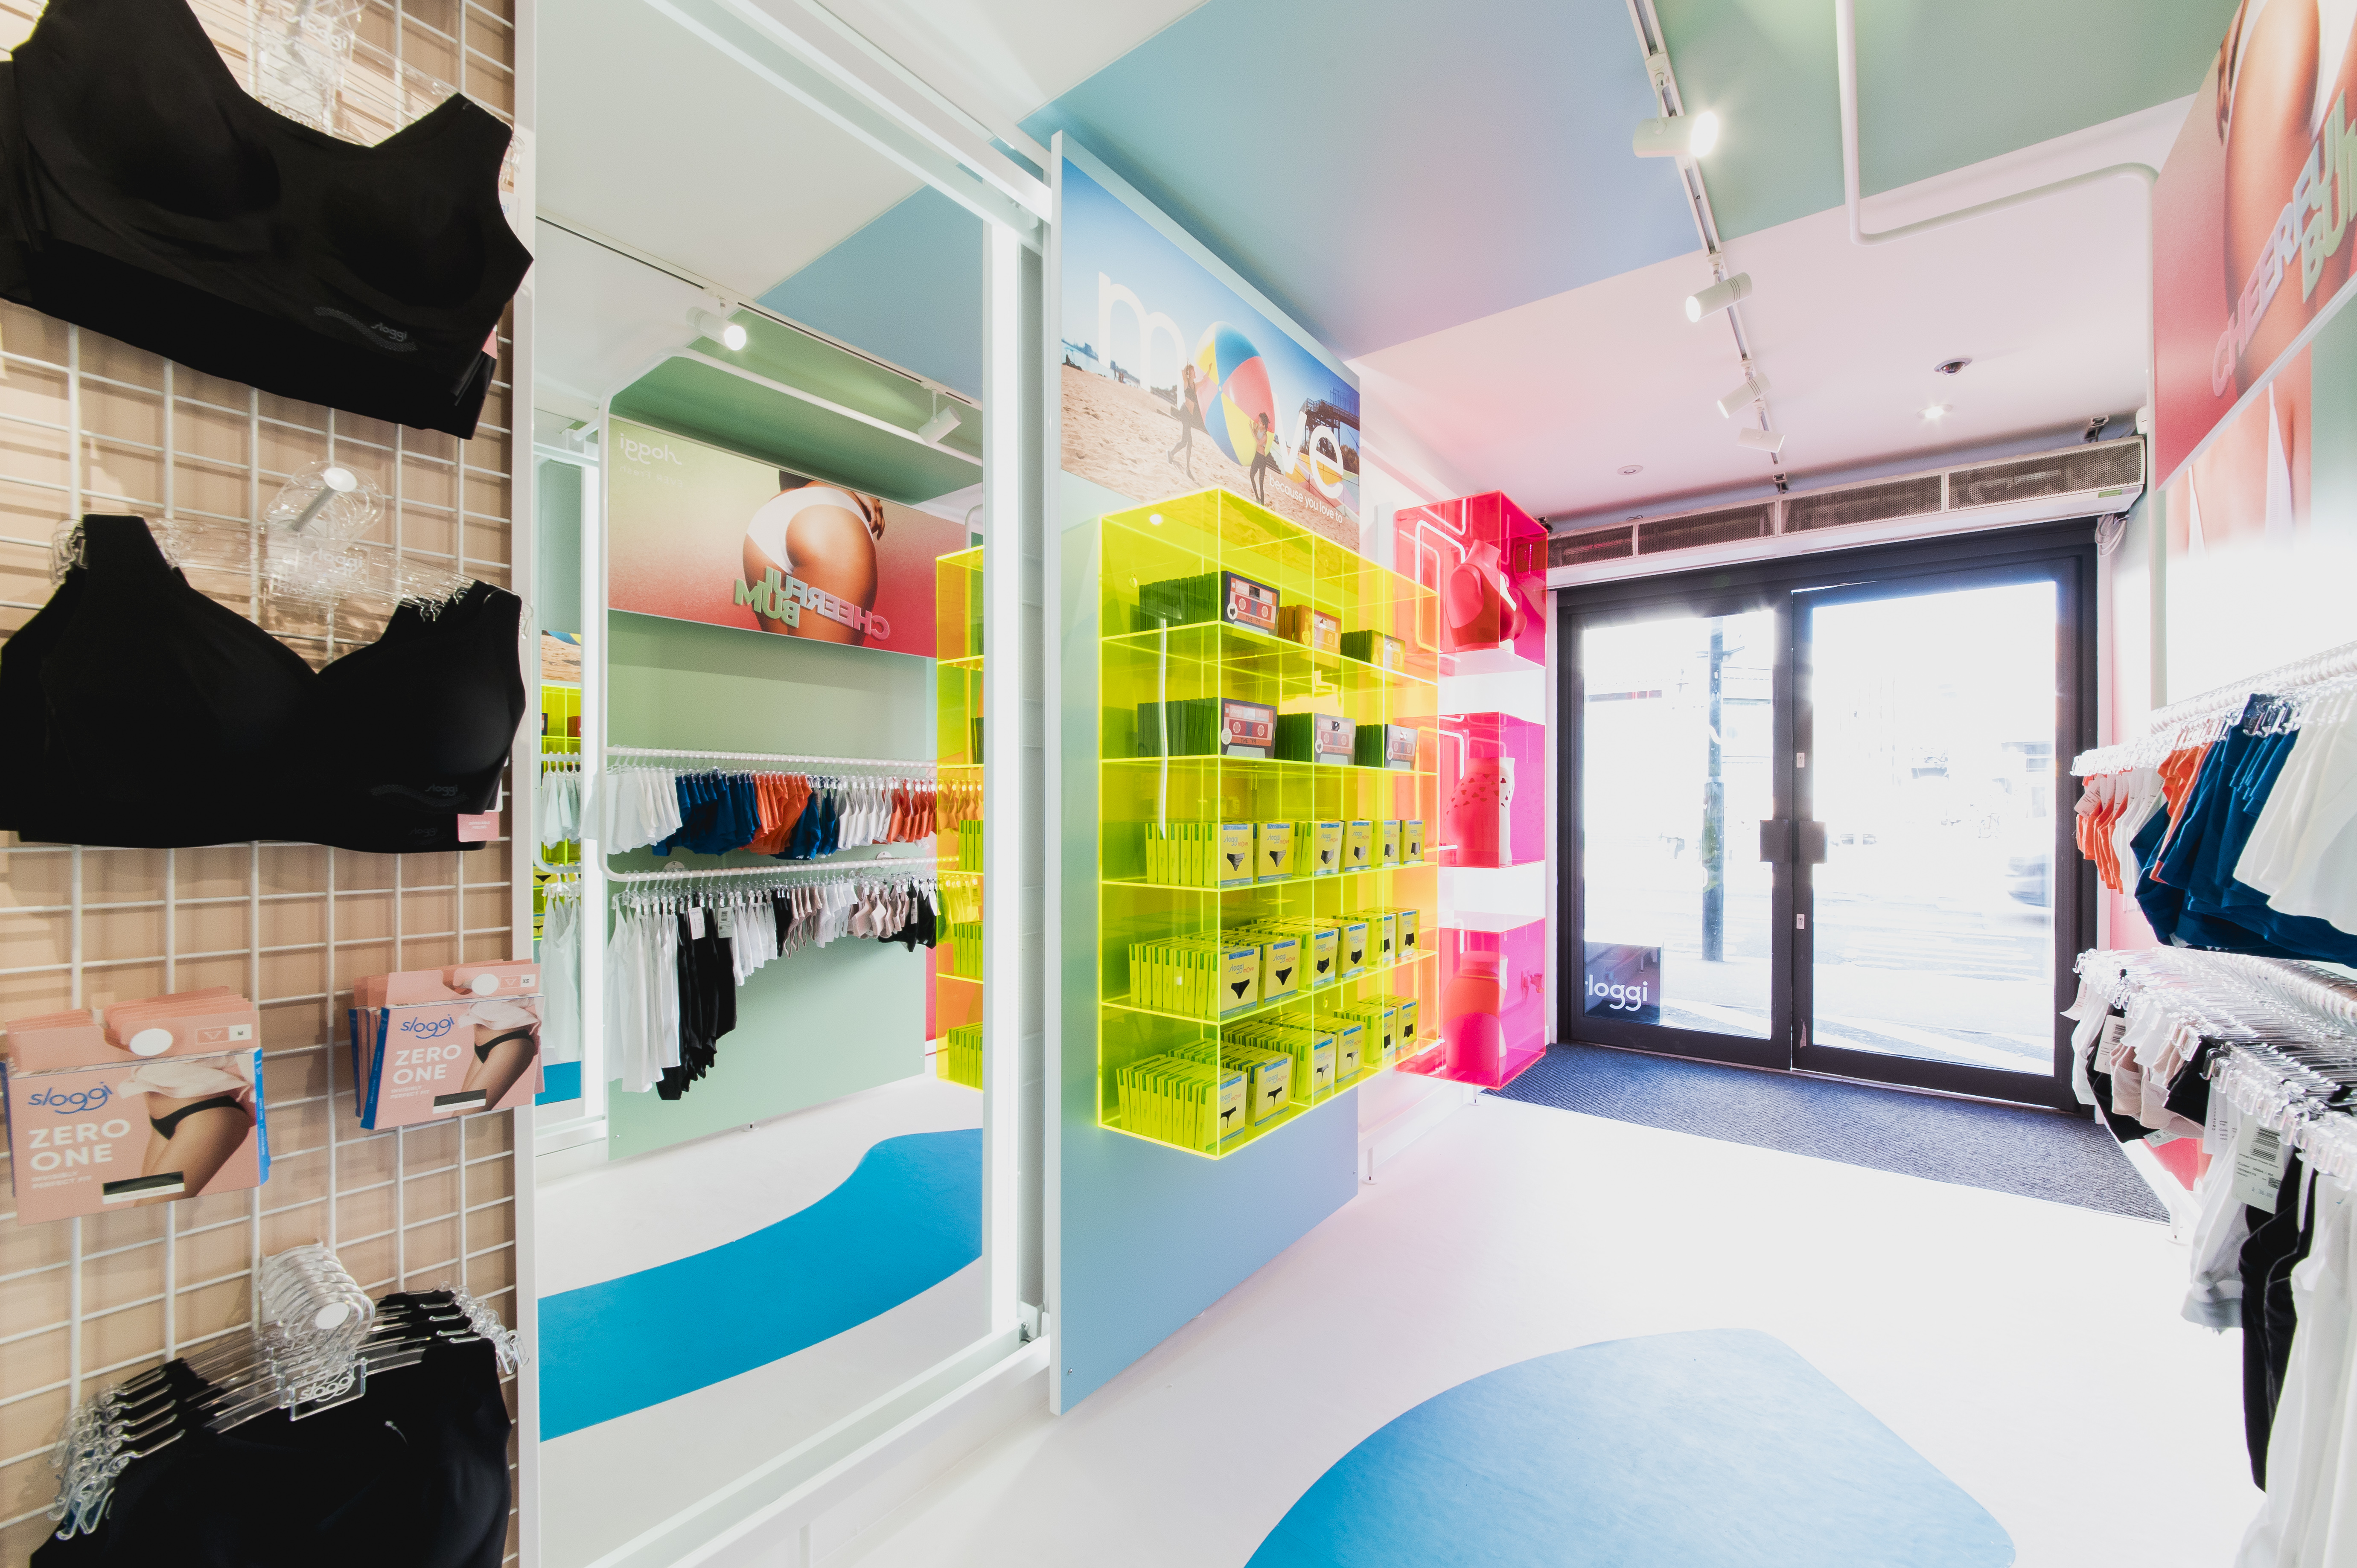 5d8ad29aa967a Iconic underwear brand sloggi are launching at Boxpark Shoreditch this  month. The Boxpark pop-up will be their first UK retail store, a landmark  opening for ...